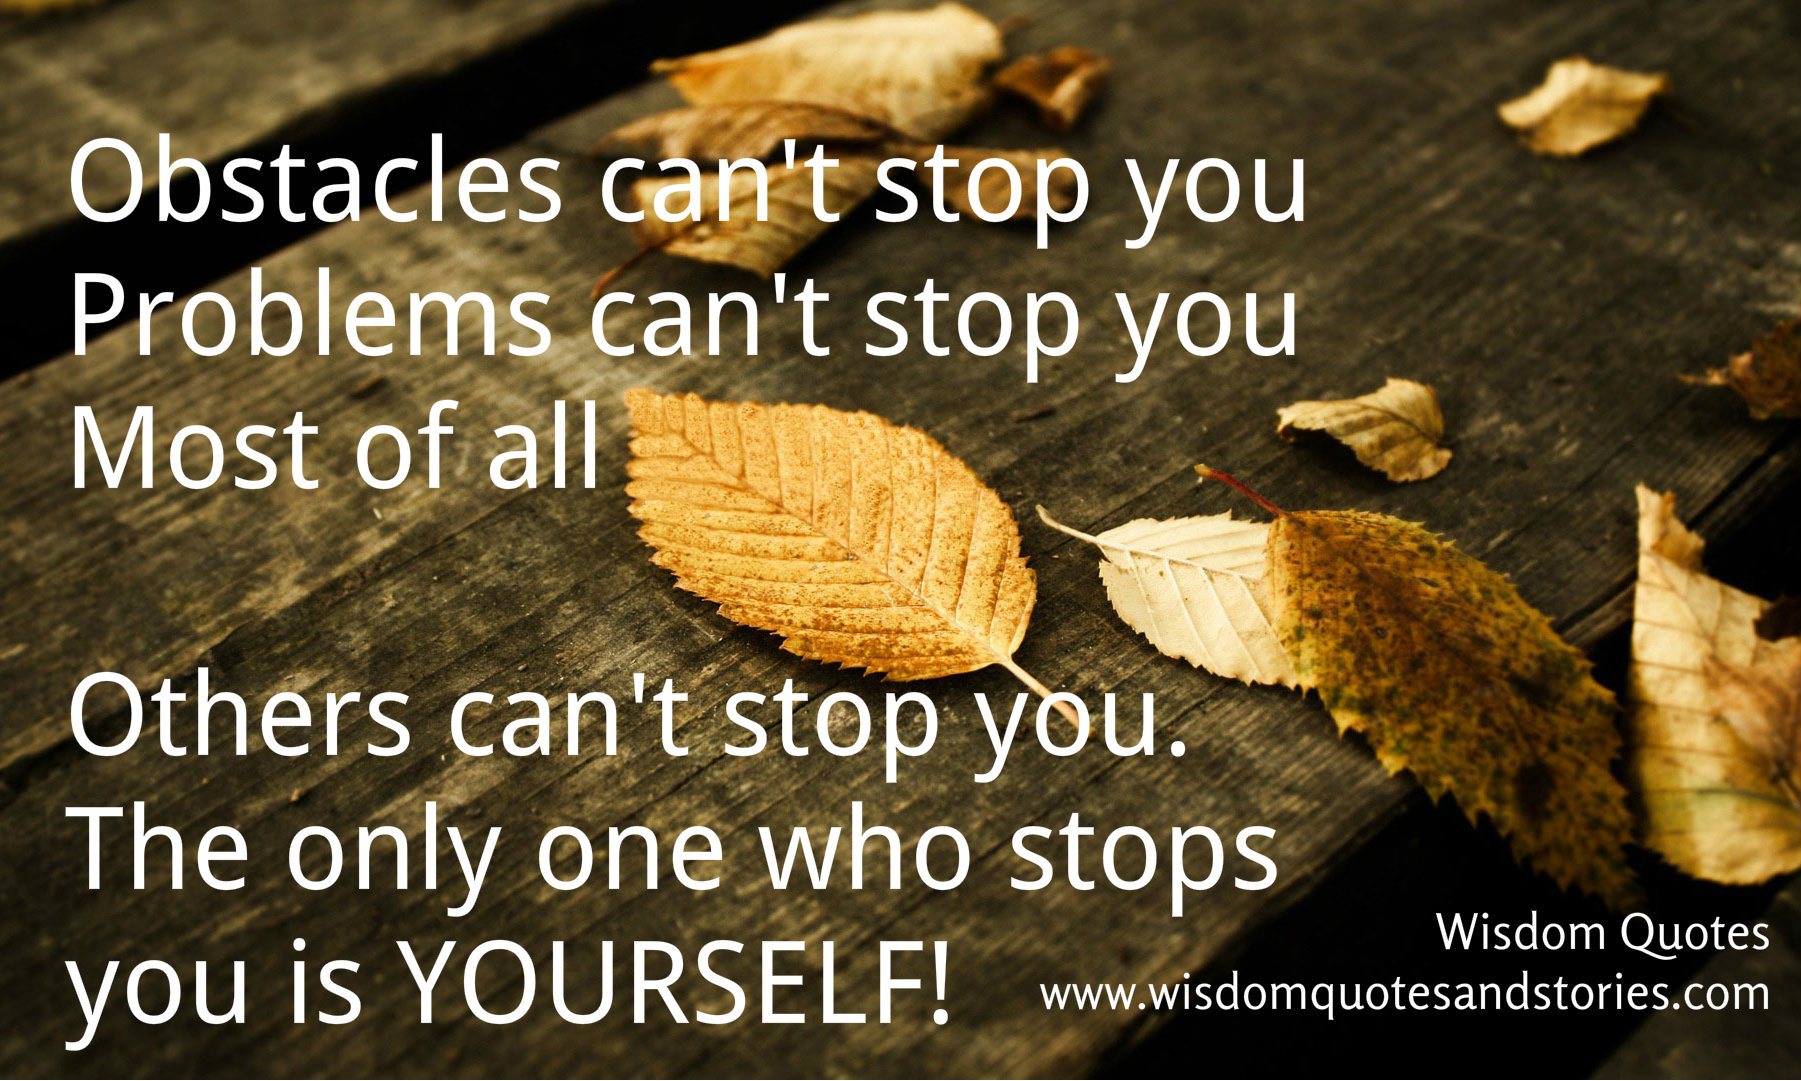 obstacles can't stop you. Only one who stops you is yourself  - Wisdom Quotes and Stories